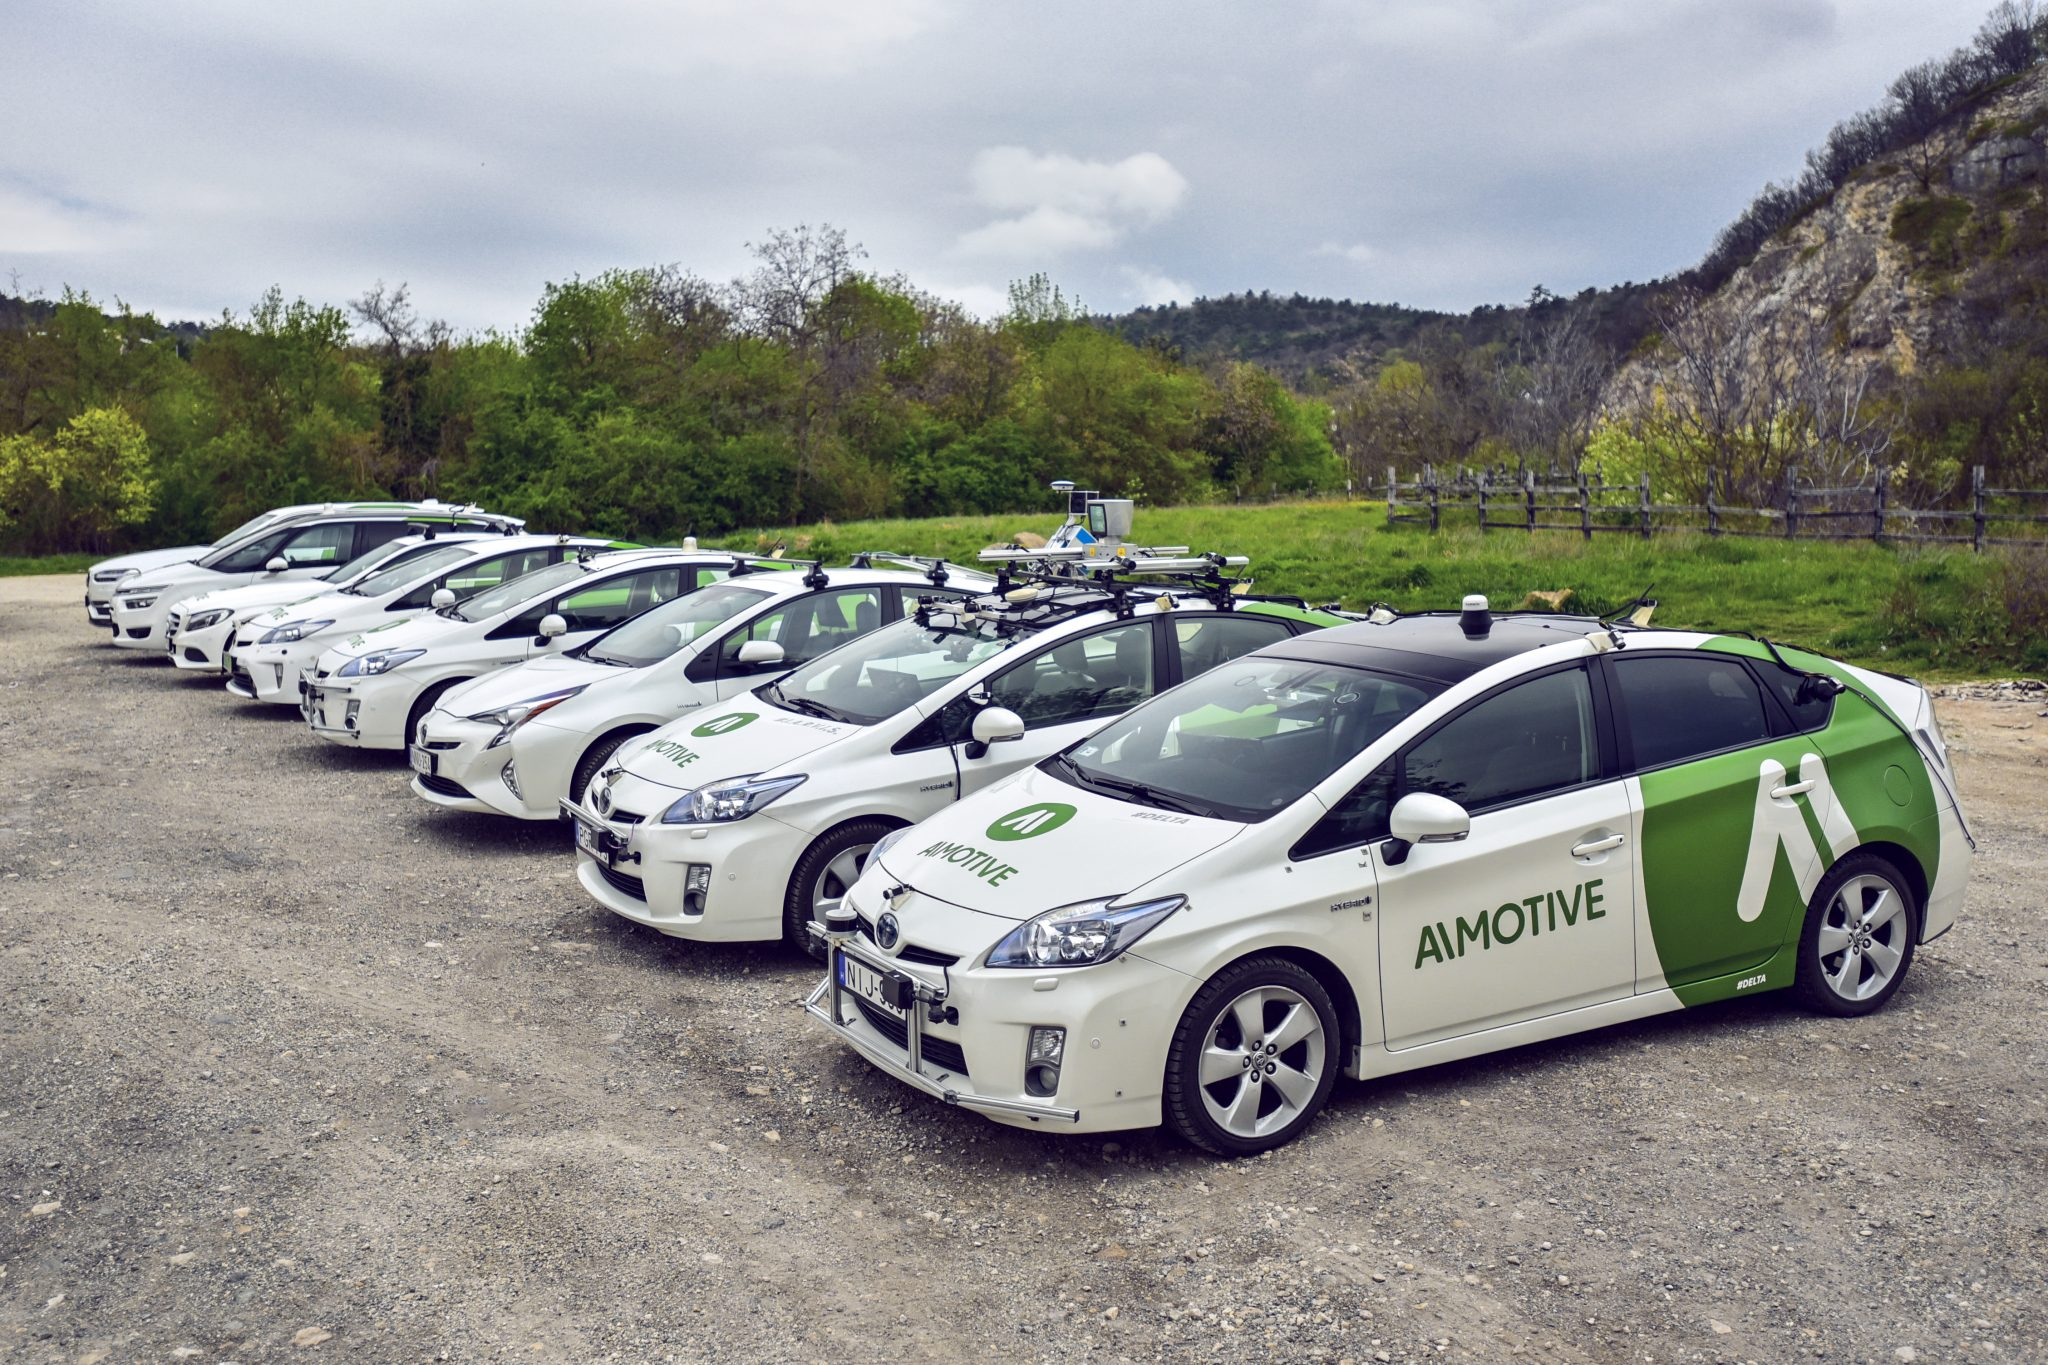 Aimotive fleet